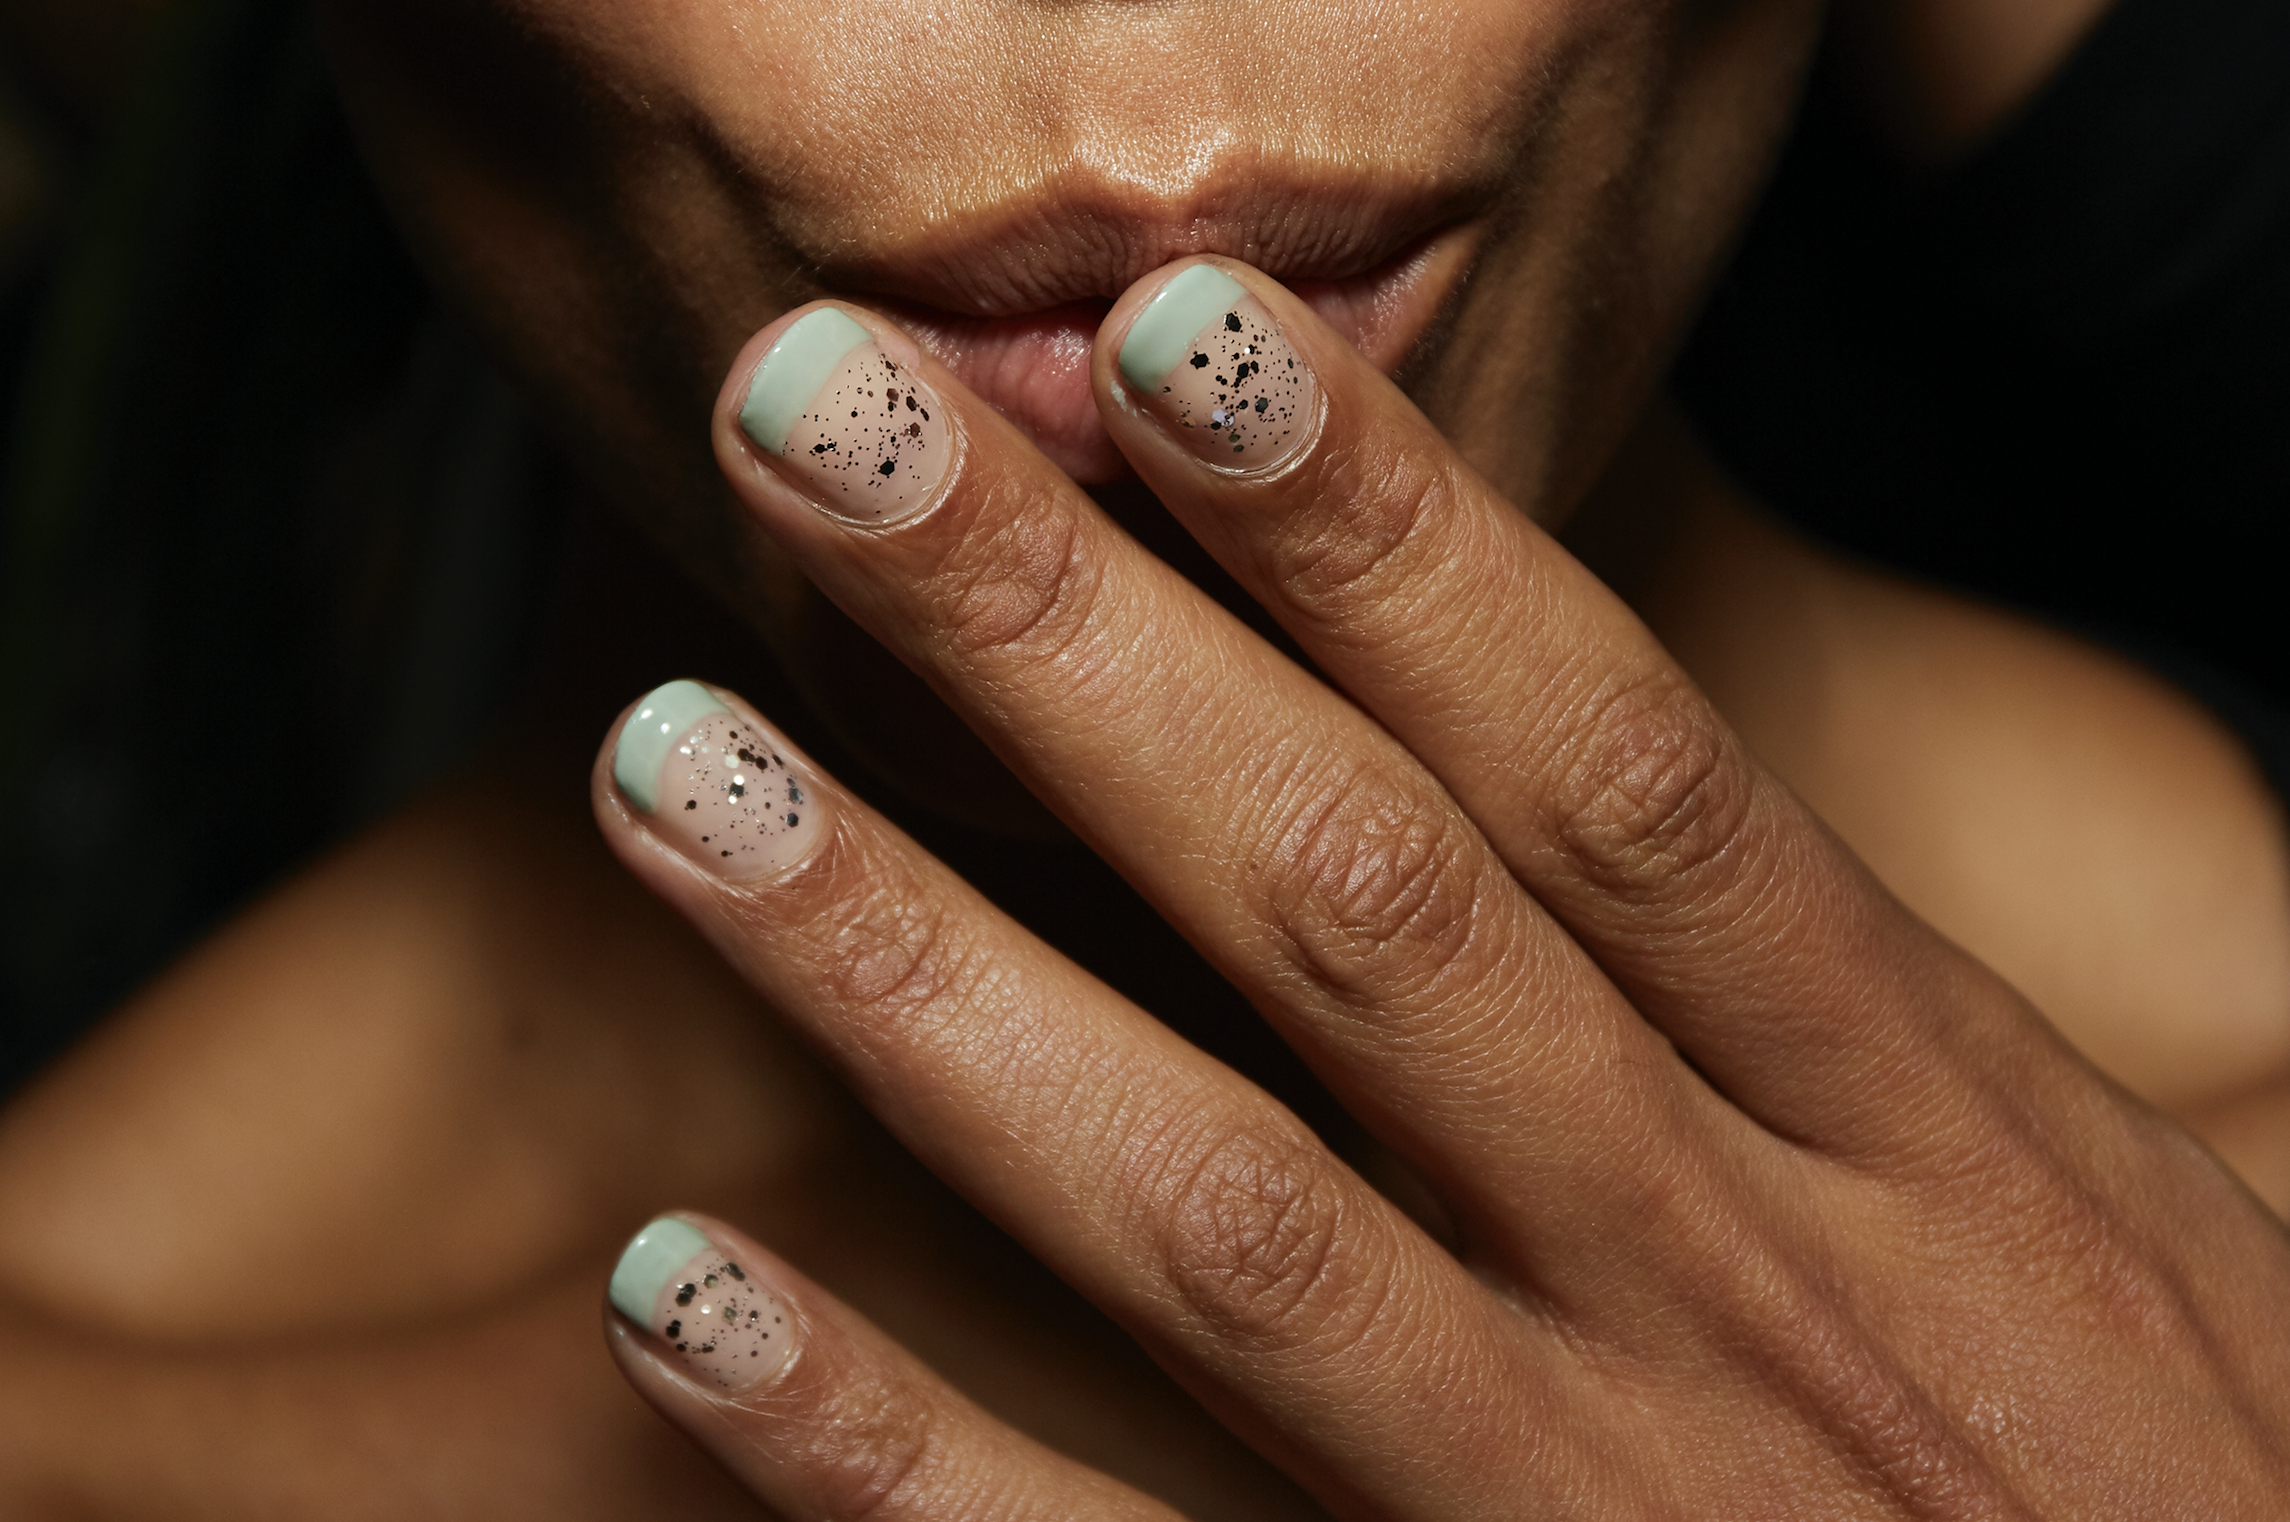 Nail Colors For Spring 2020.The Best Spring 2020 Nail Trends Straight From The Runways